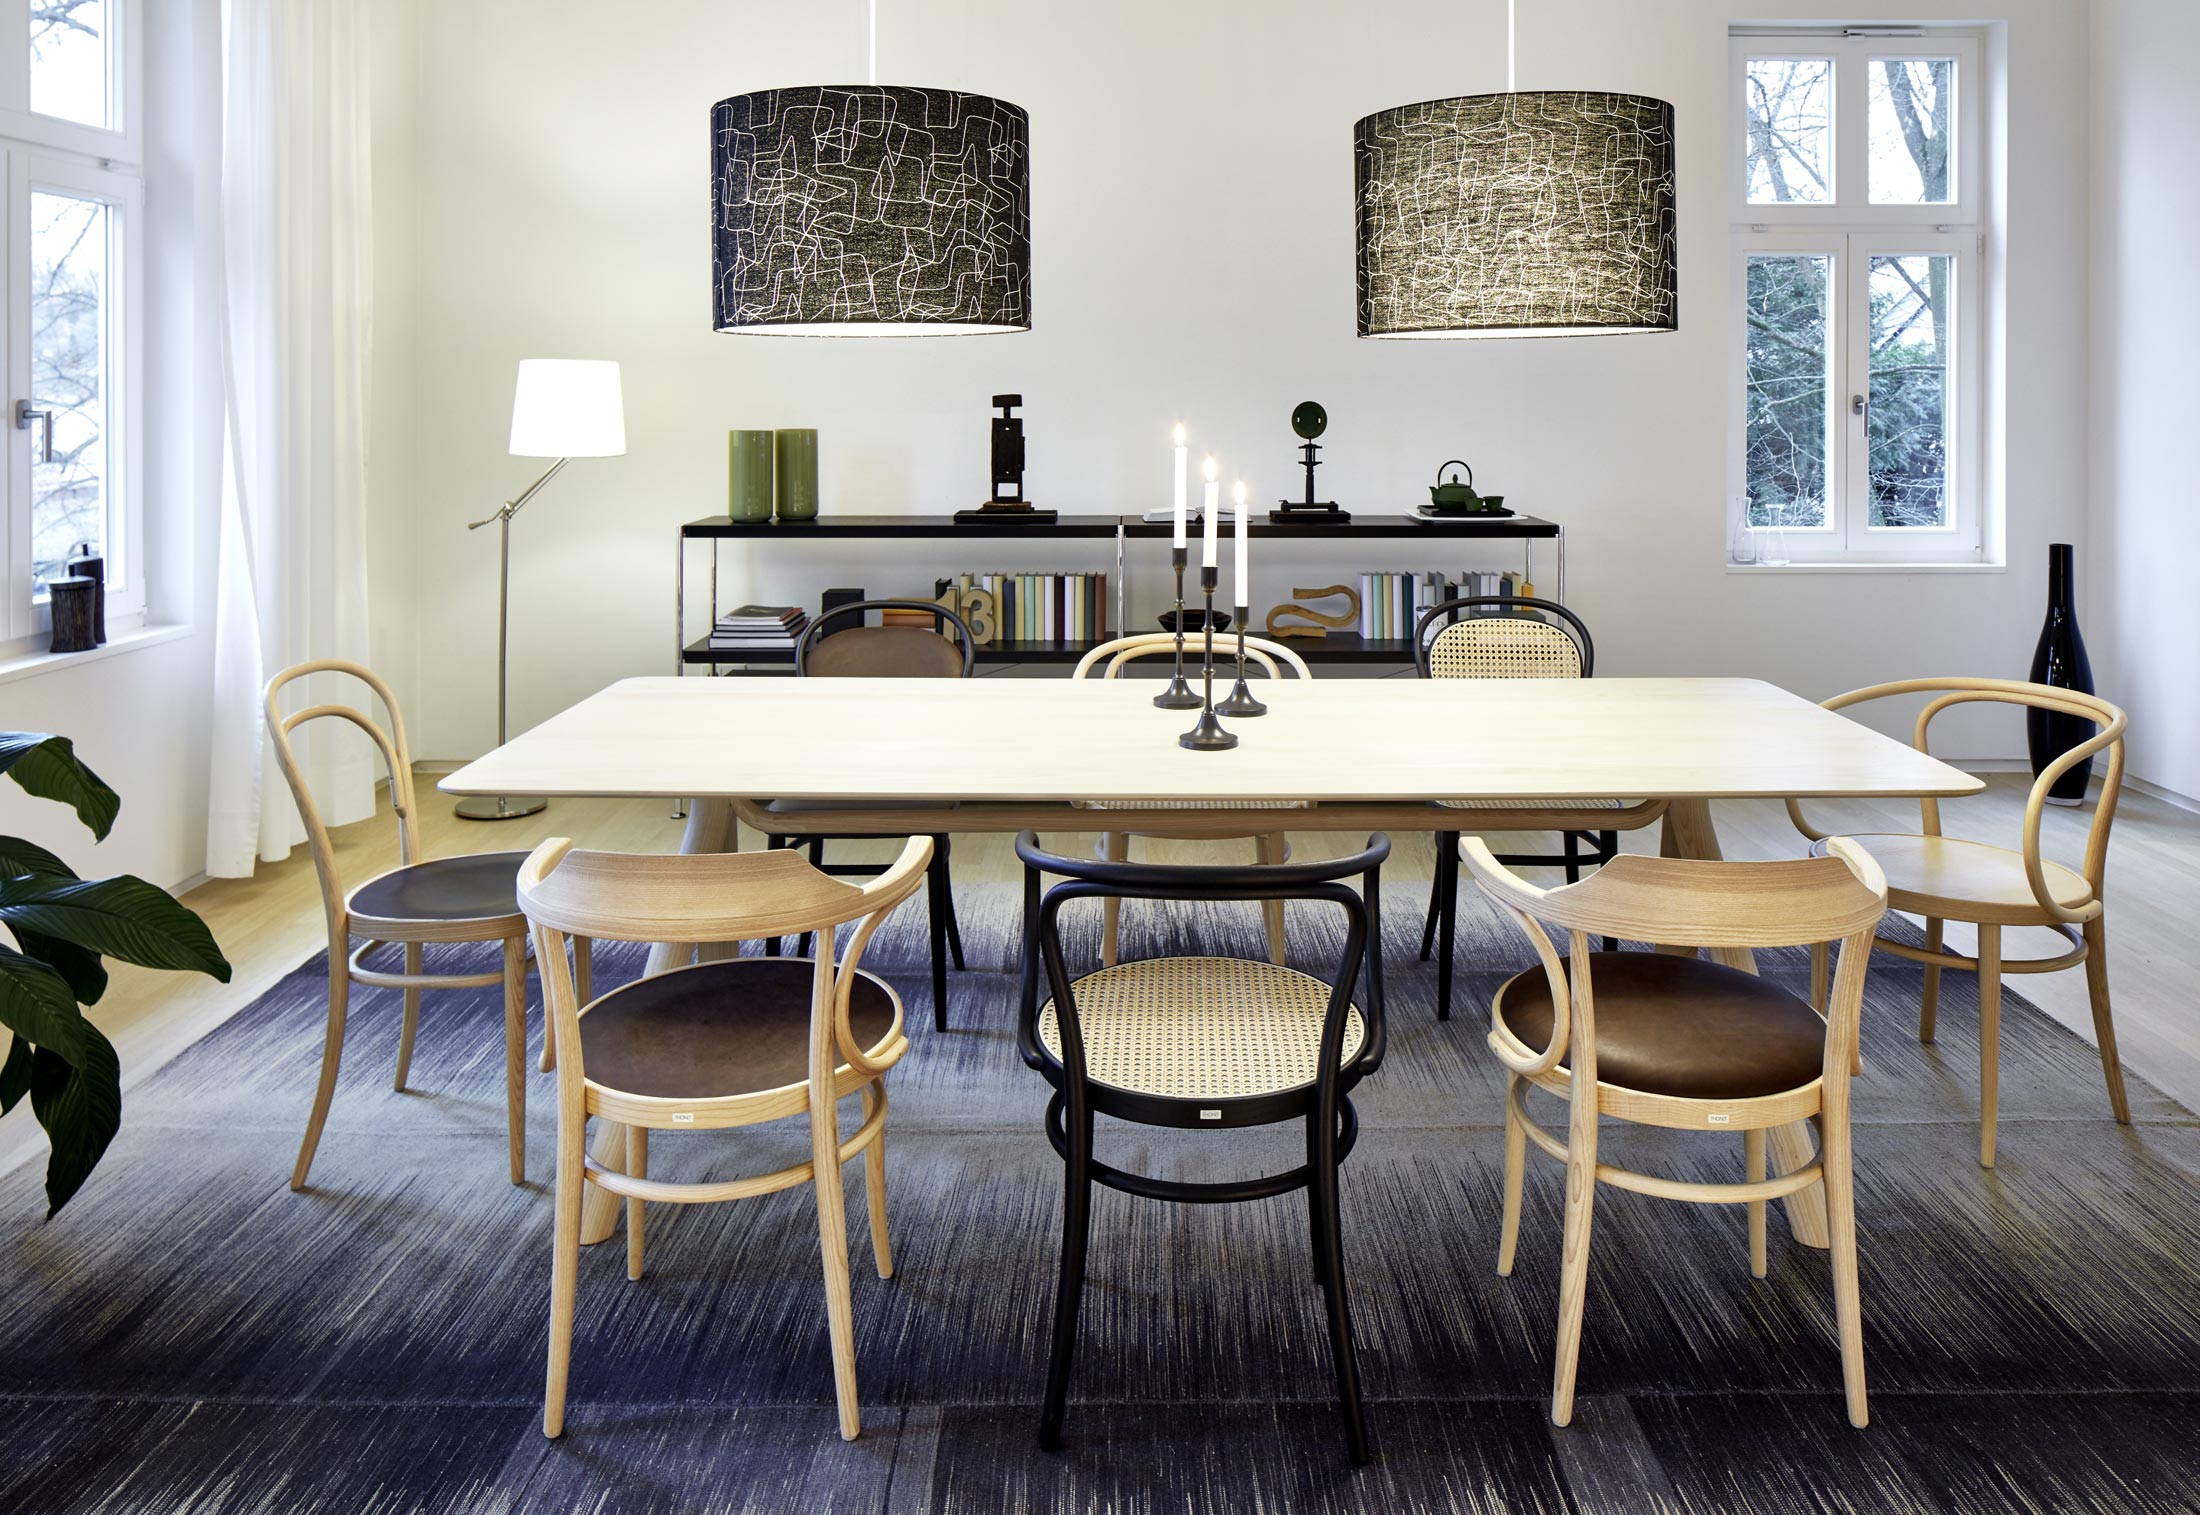 1060 Table by Jorre van Ast for Thonet